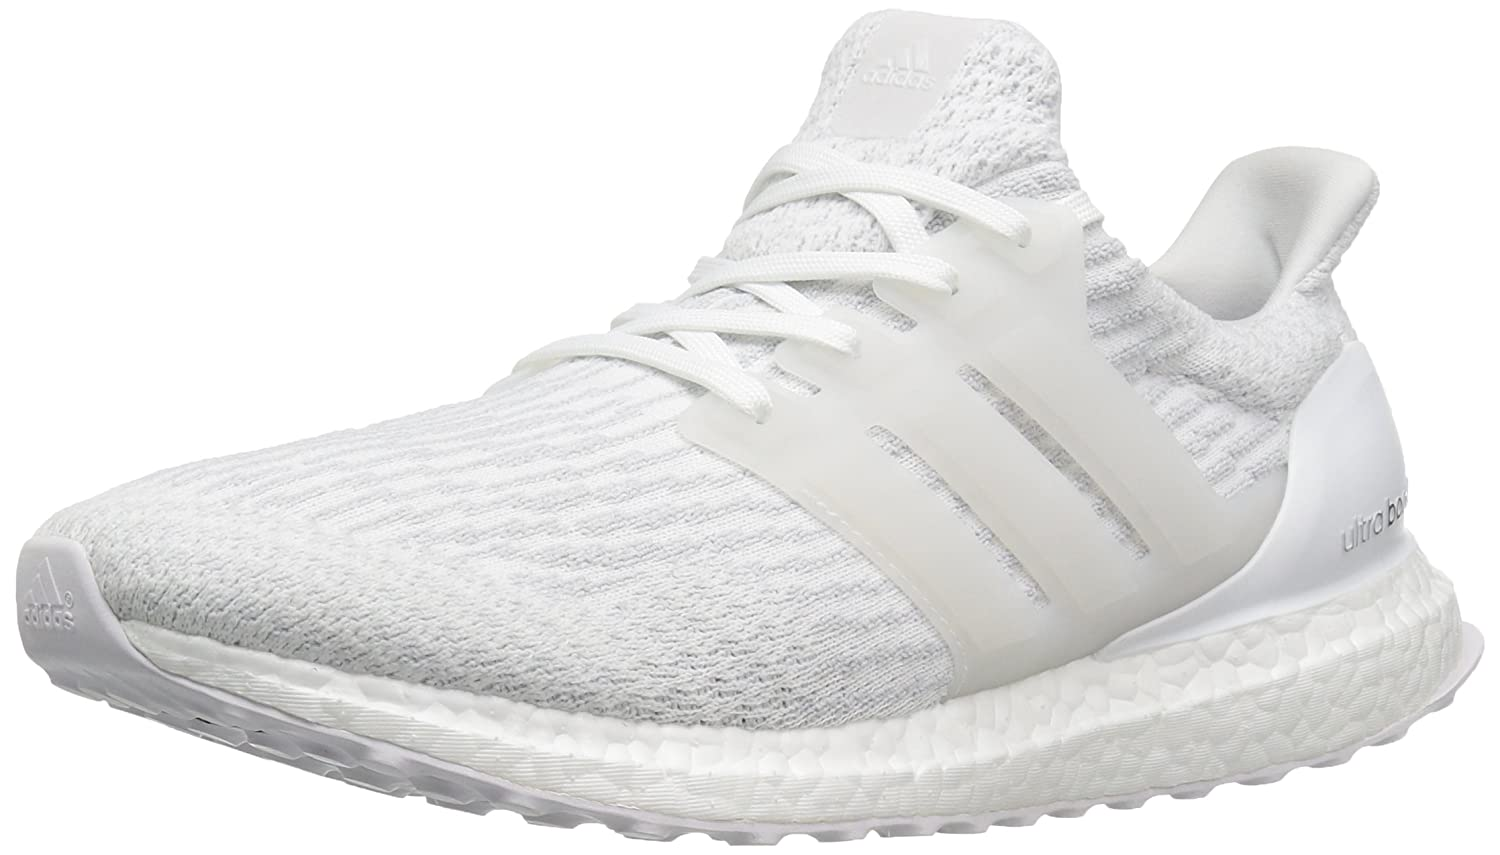 Gentlemen/Ladies adidas Men's Ultra Boost Boost Ultra Trainers Multicolor Size: Wear resistant Fast delivery Extreme speed logistics VG11753 c0f0ff